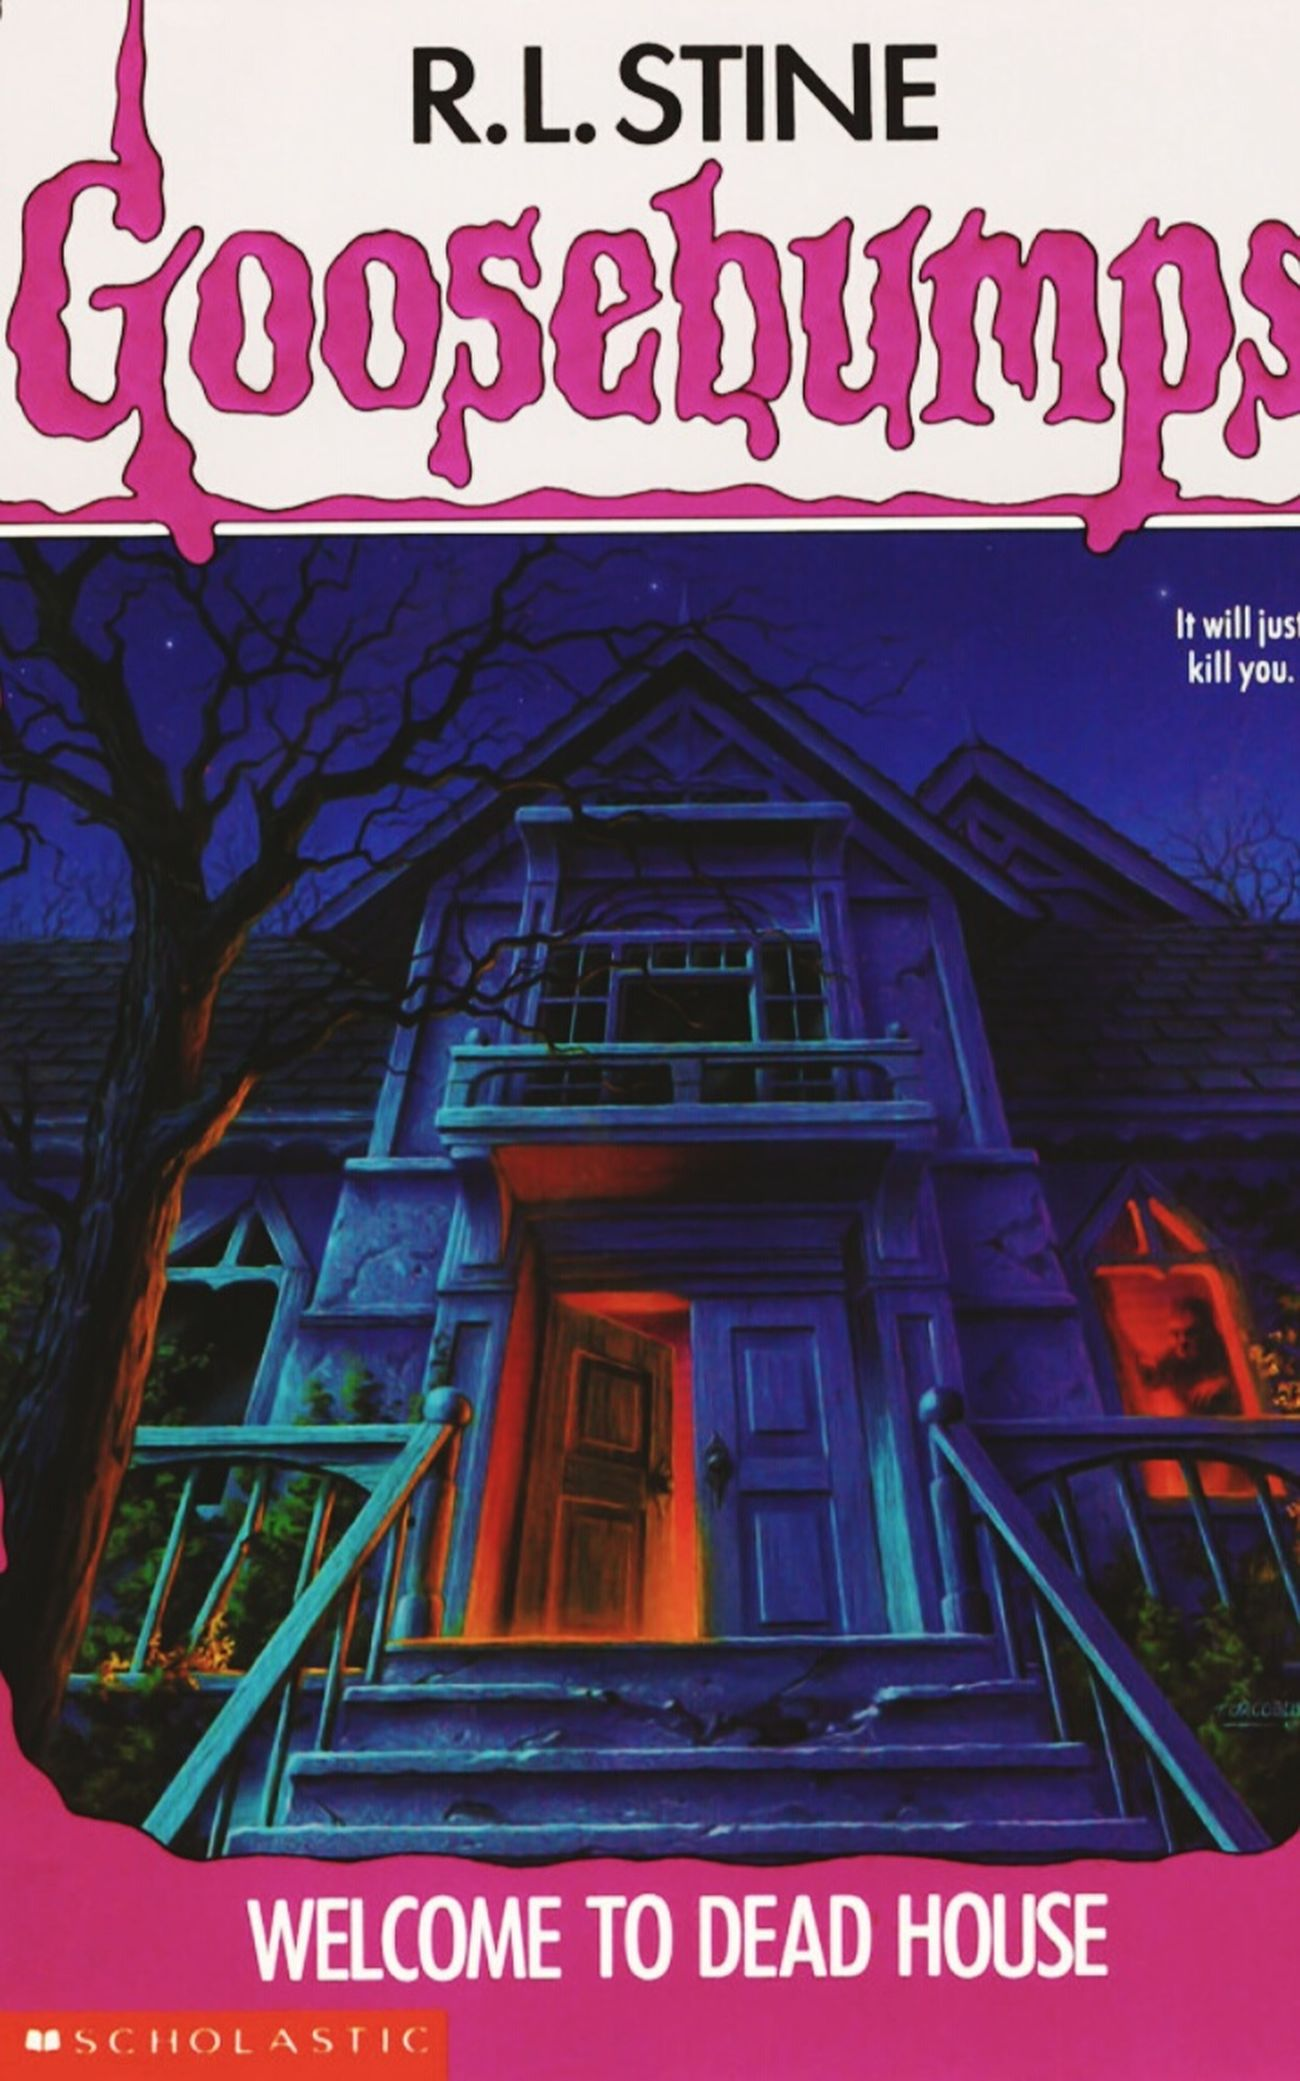 the another great book from ❤📚 Books ♥ R.L Stine